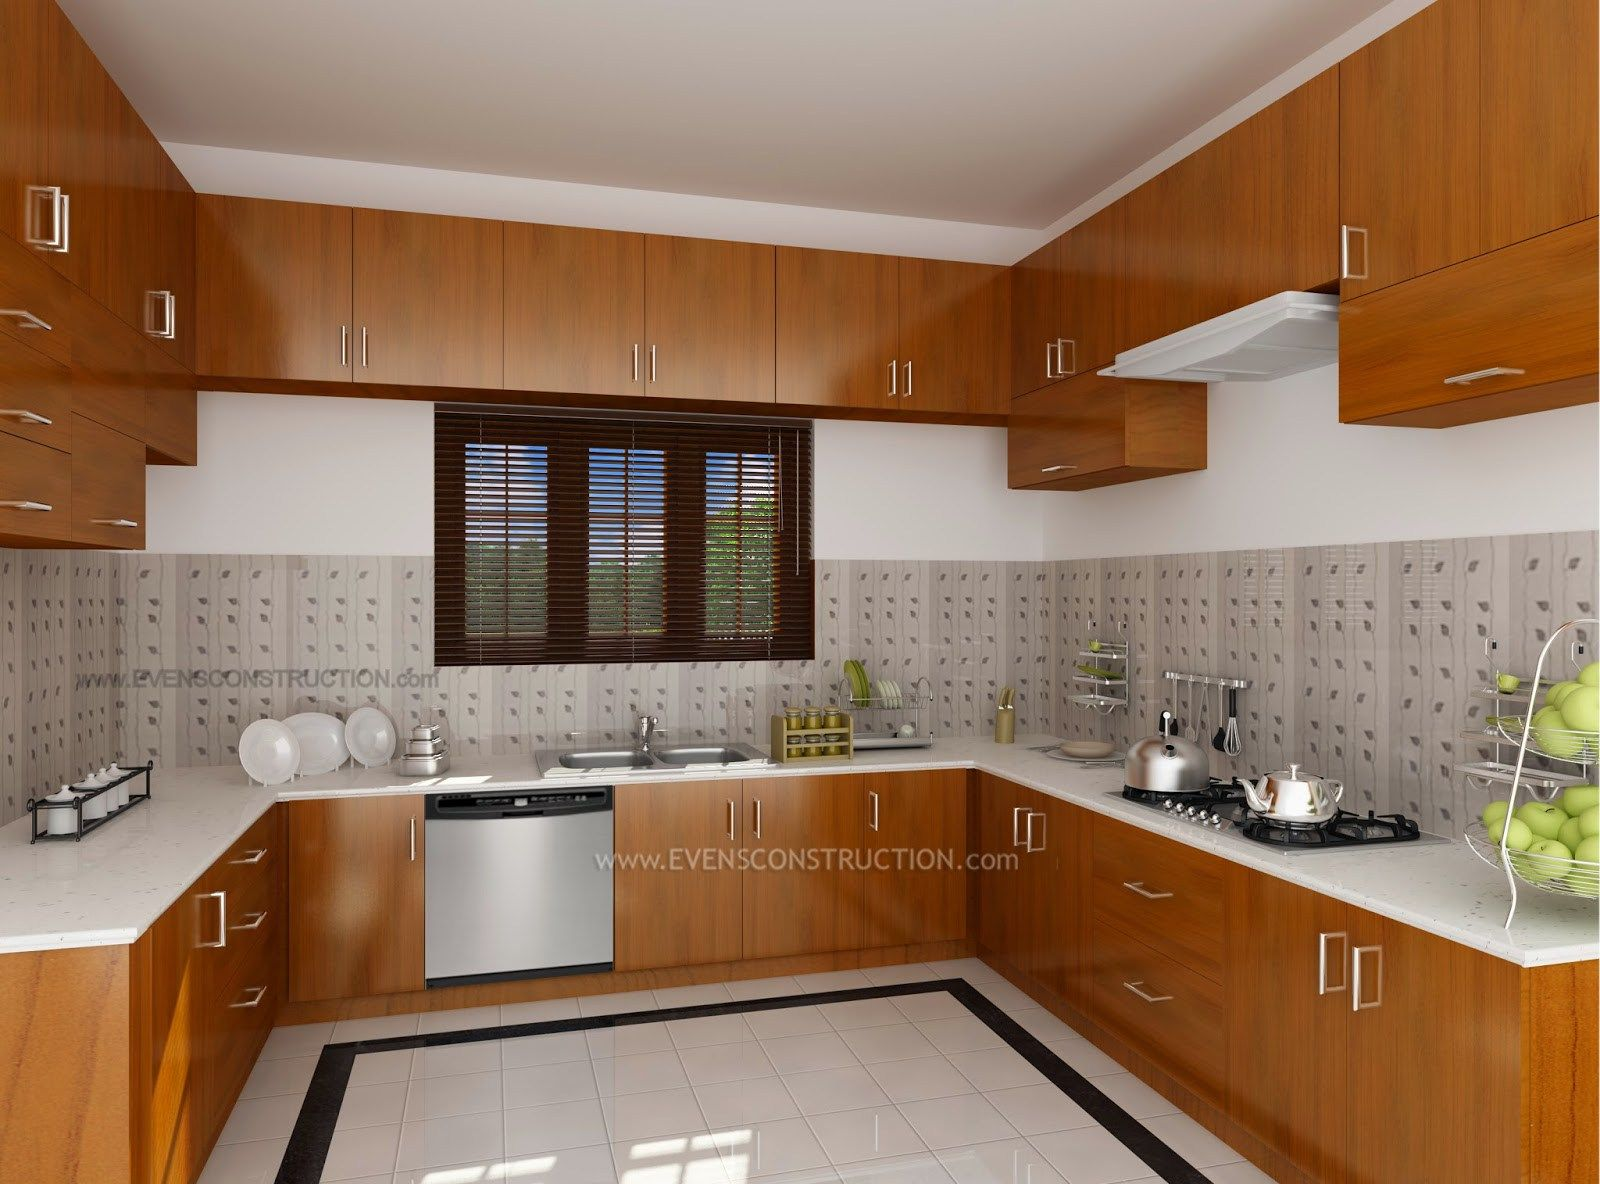 Design interior kitchen home kerala modern house kitchen Interior houses